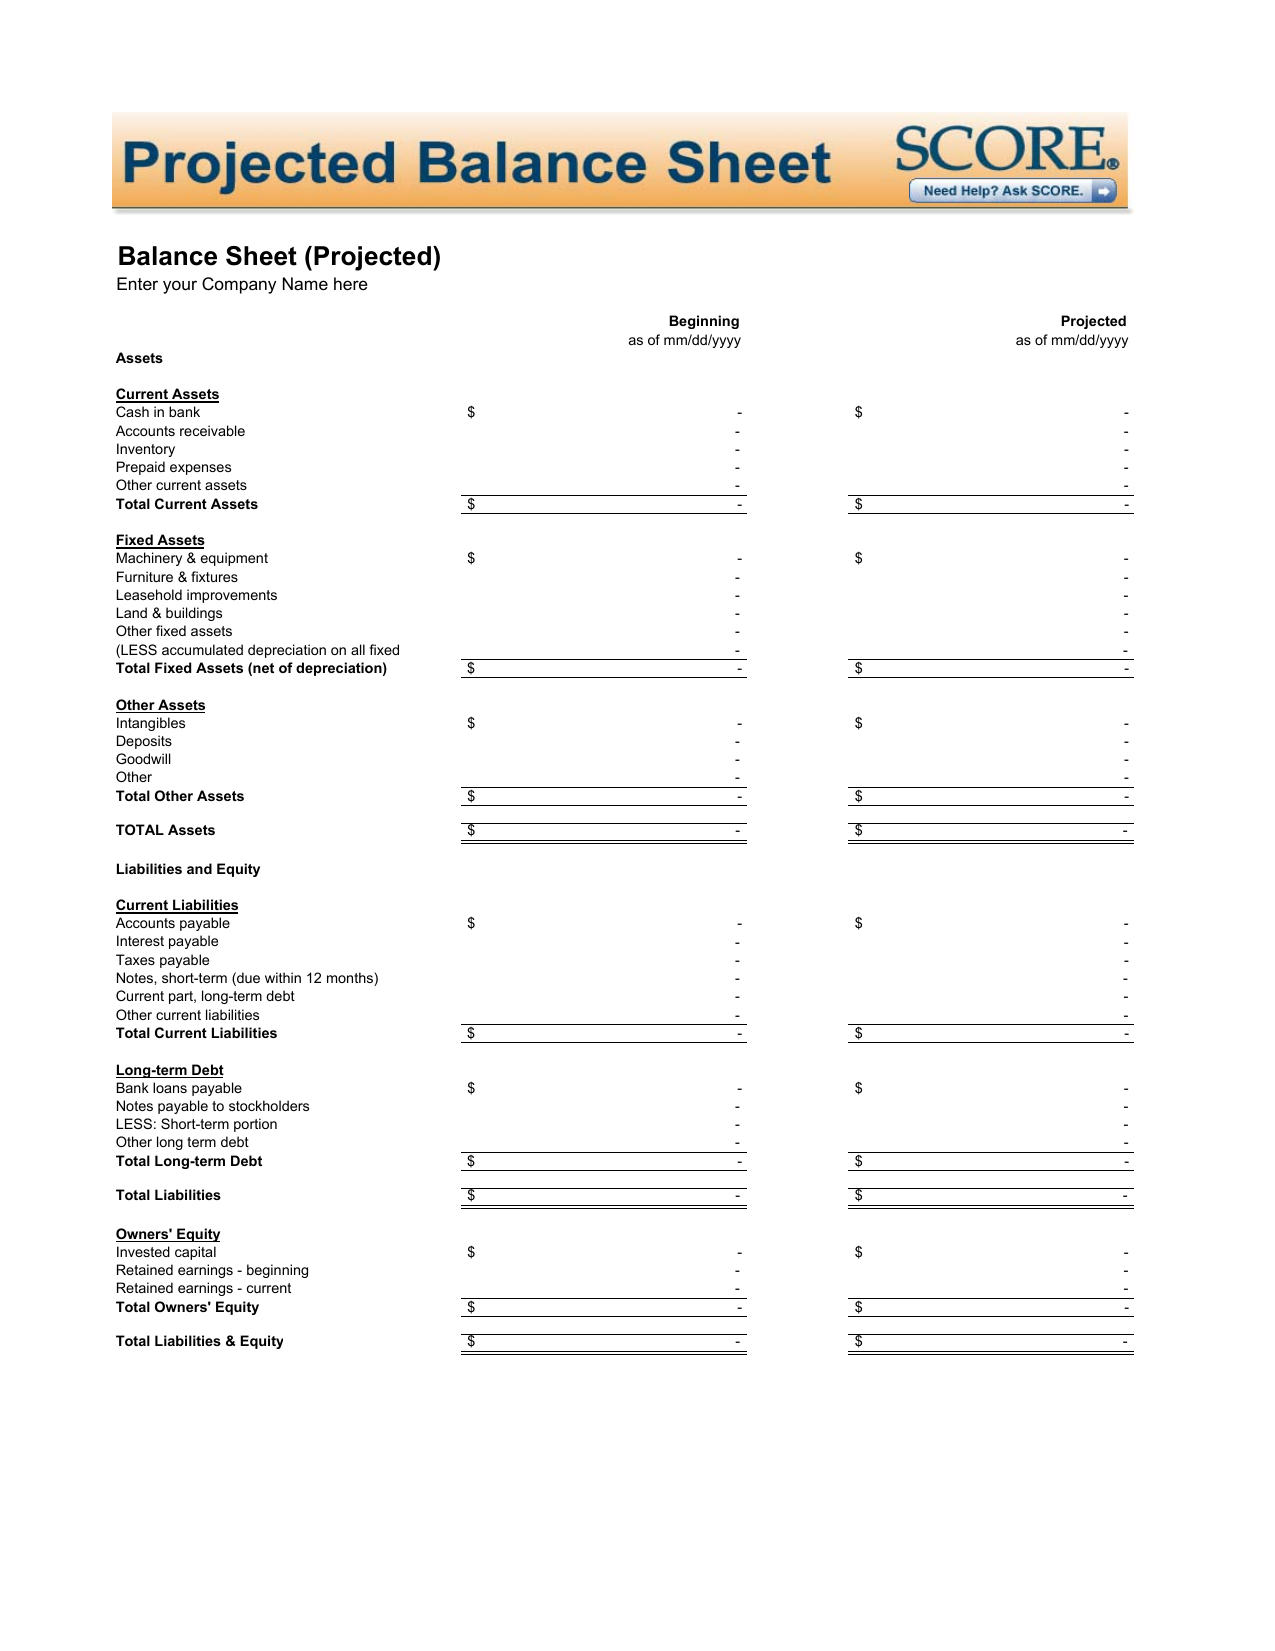 Download Projected Balance Sheet Template | Excel | PDF | RTF | Word ...